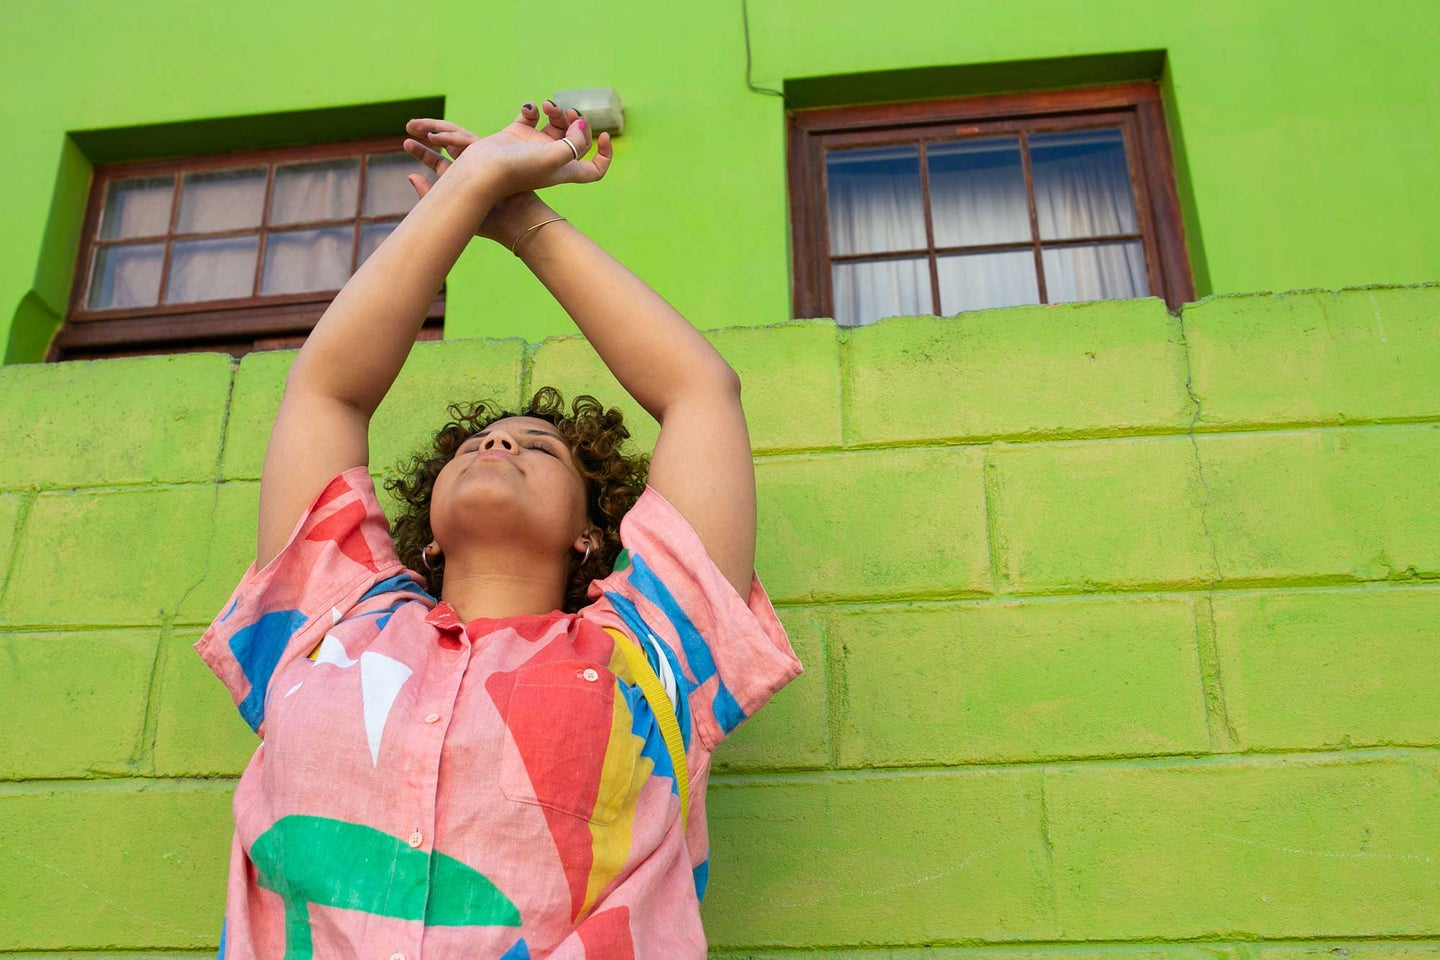 Woman with raised arms in front of a neon green brick wall